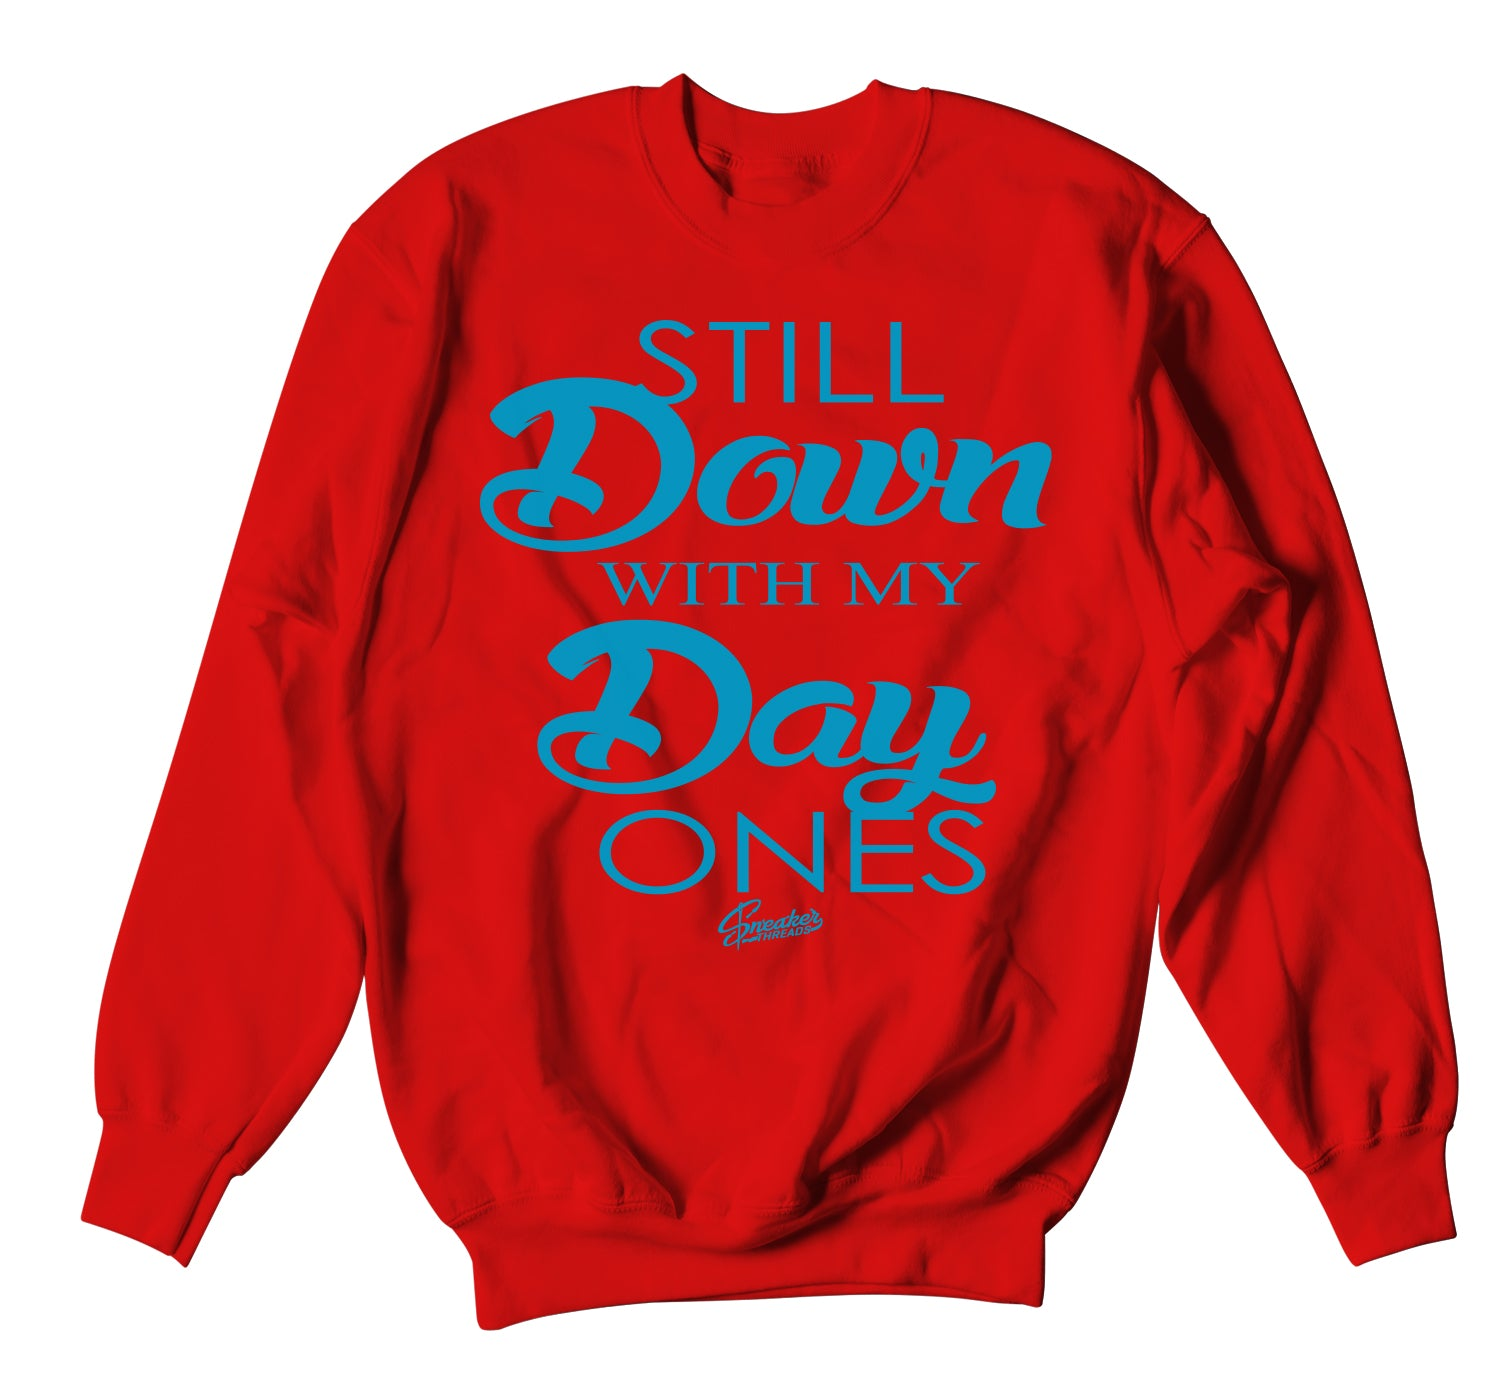 Jordan 1 NC To CHI Day Ones Sweater